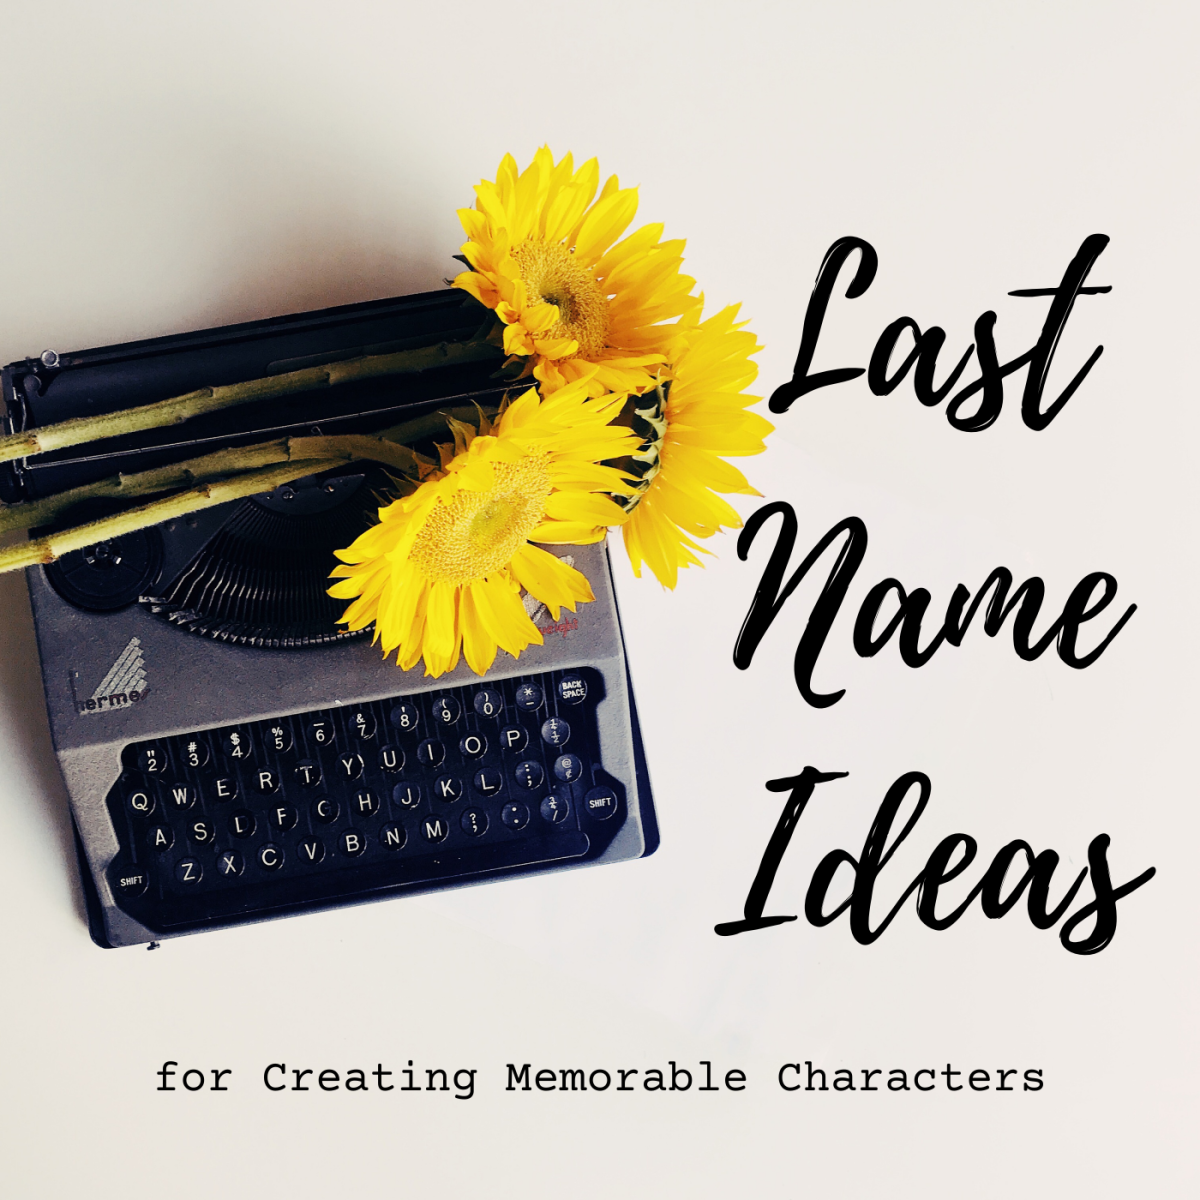 Get help choosing the perfect last name for your character with these idea lists, including A–Z surnames, magical last names, interesting names, and more!